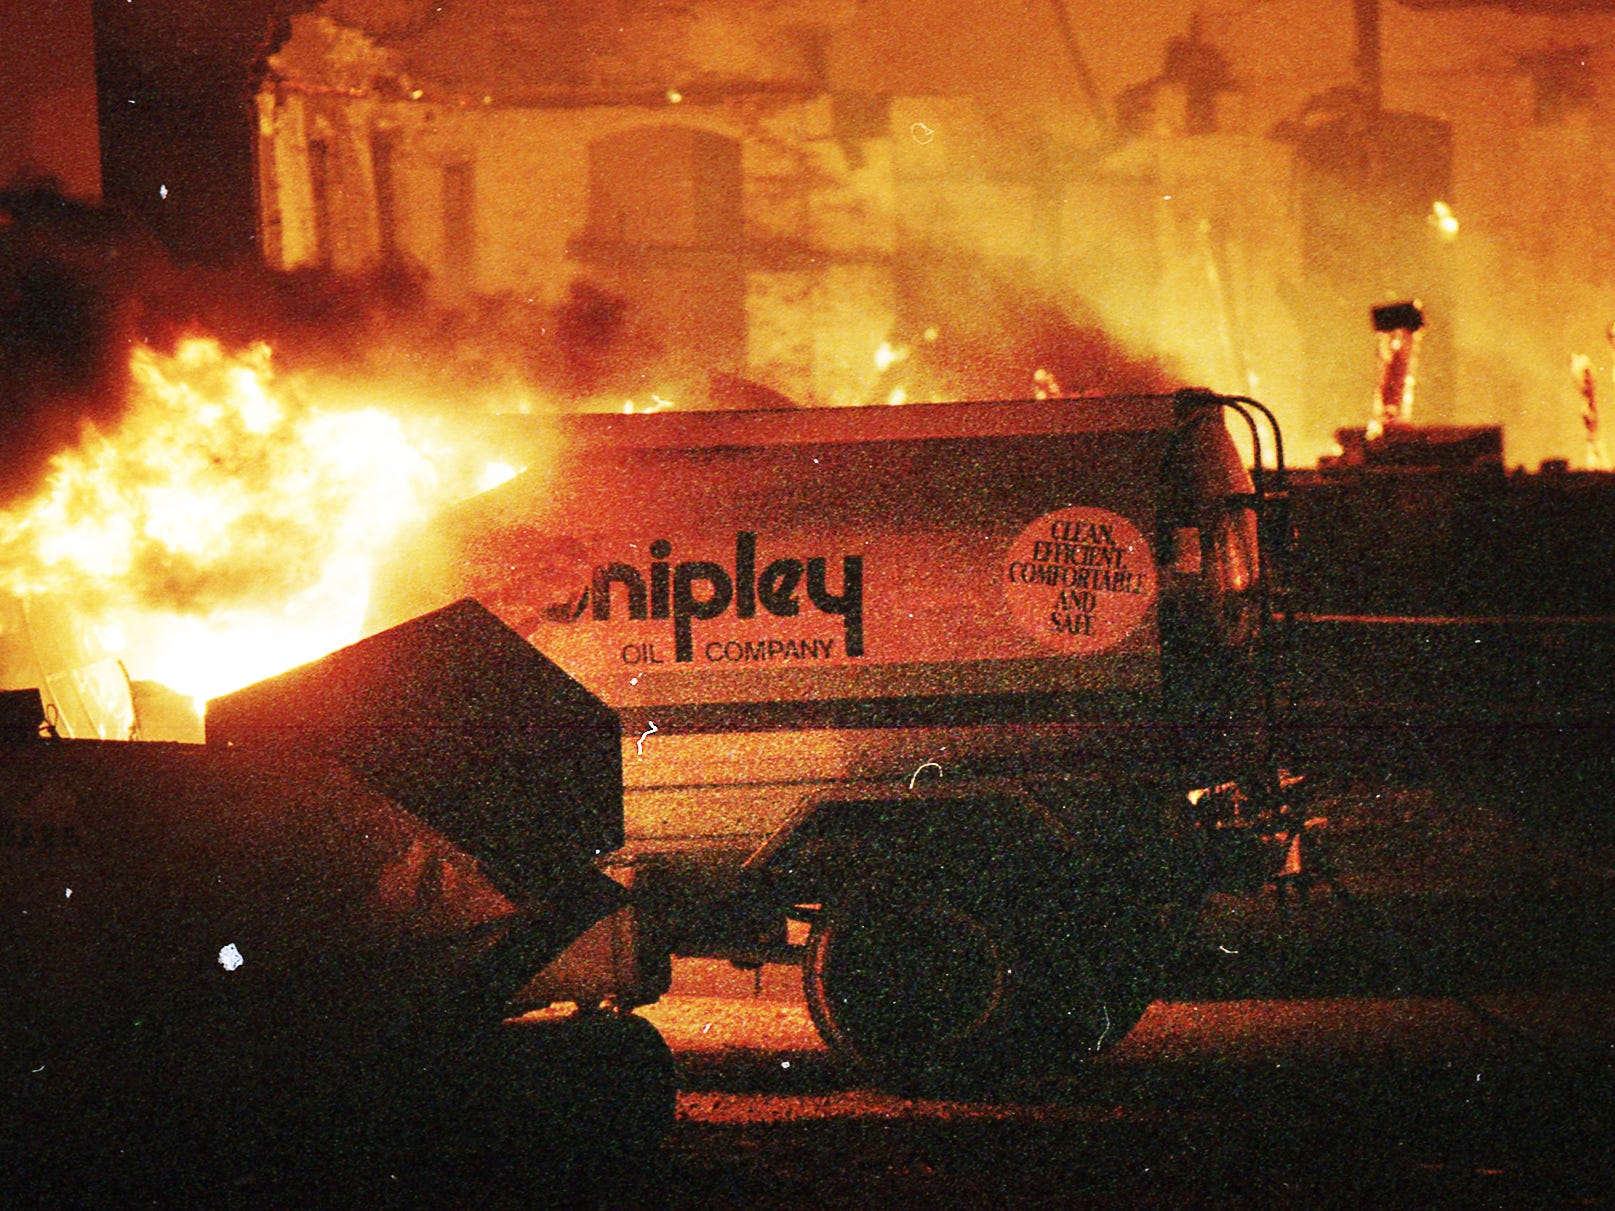 A Shipley fuel tanker burns as the fire speads from the Thonet complex. A fire began at the former Thonet Furniture plant at 491 East Princess Street in York on December 11, 1993. Eventually, the four alarm fire spread through the complex of buildings and several other properties.